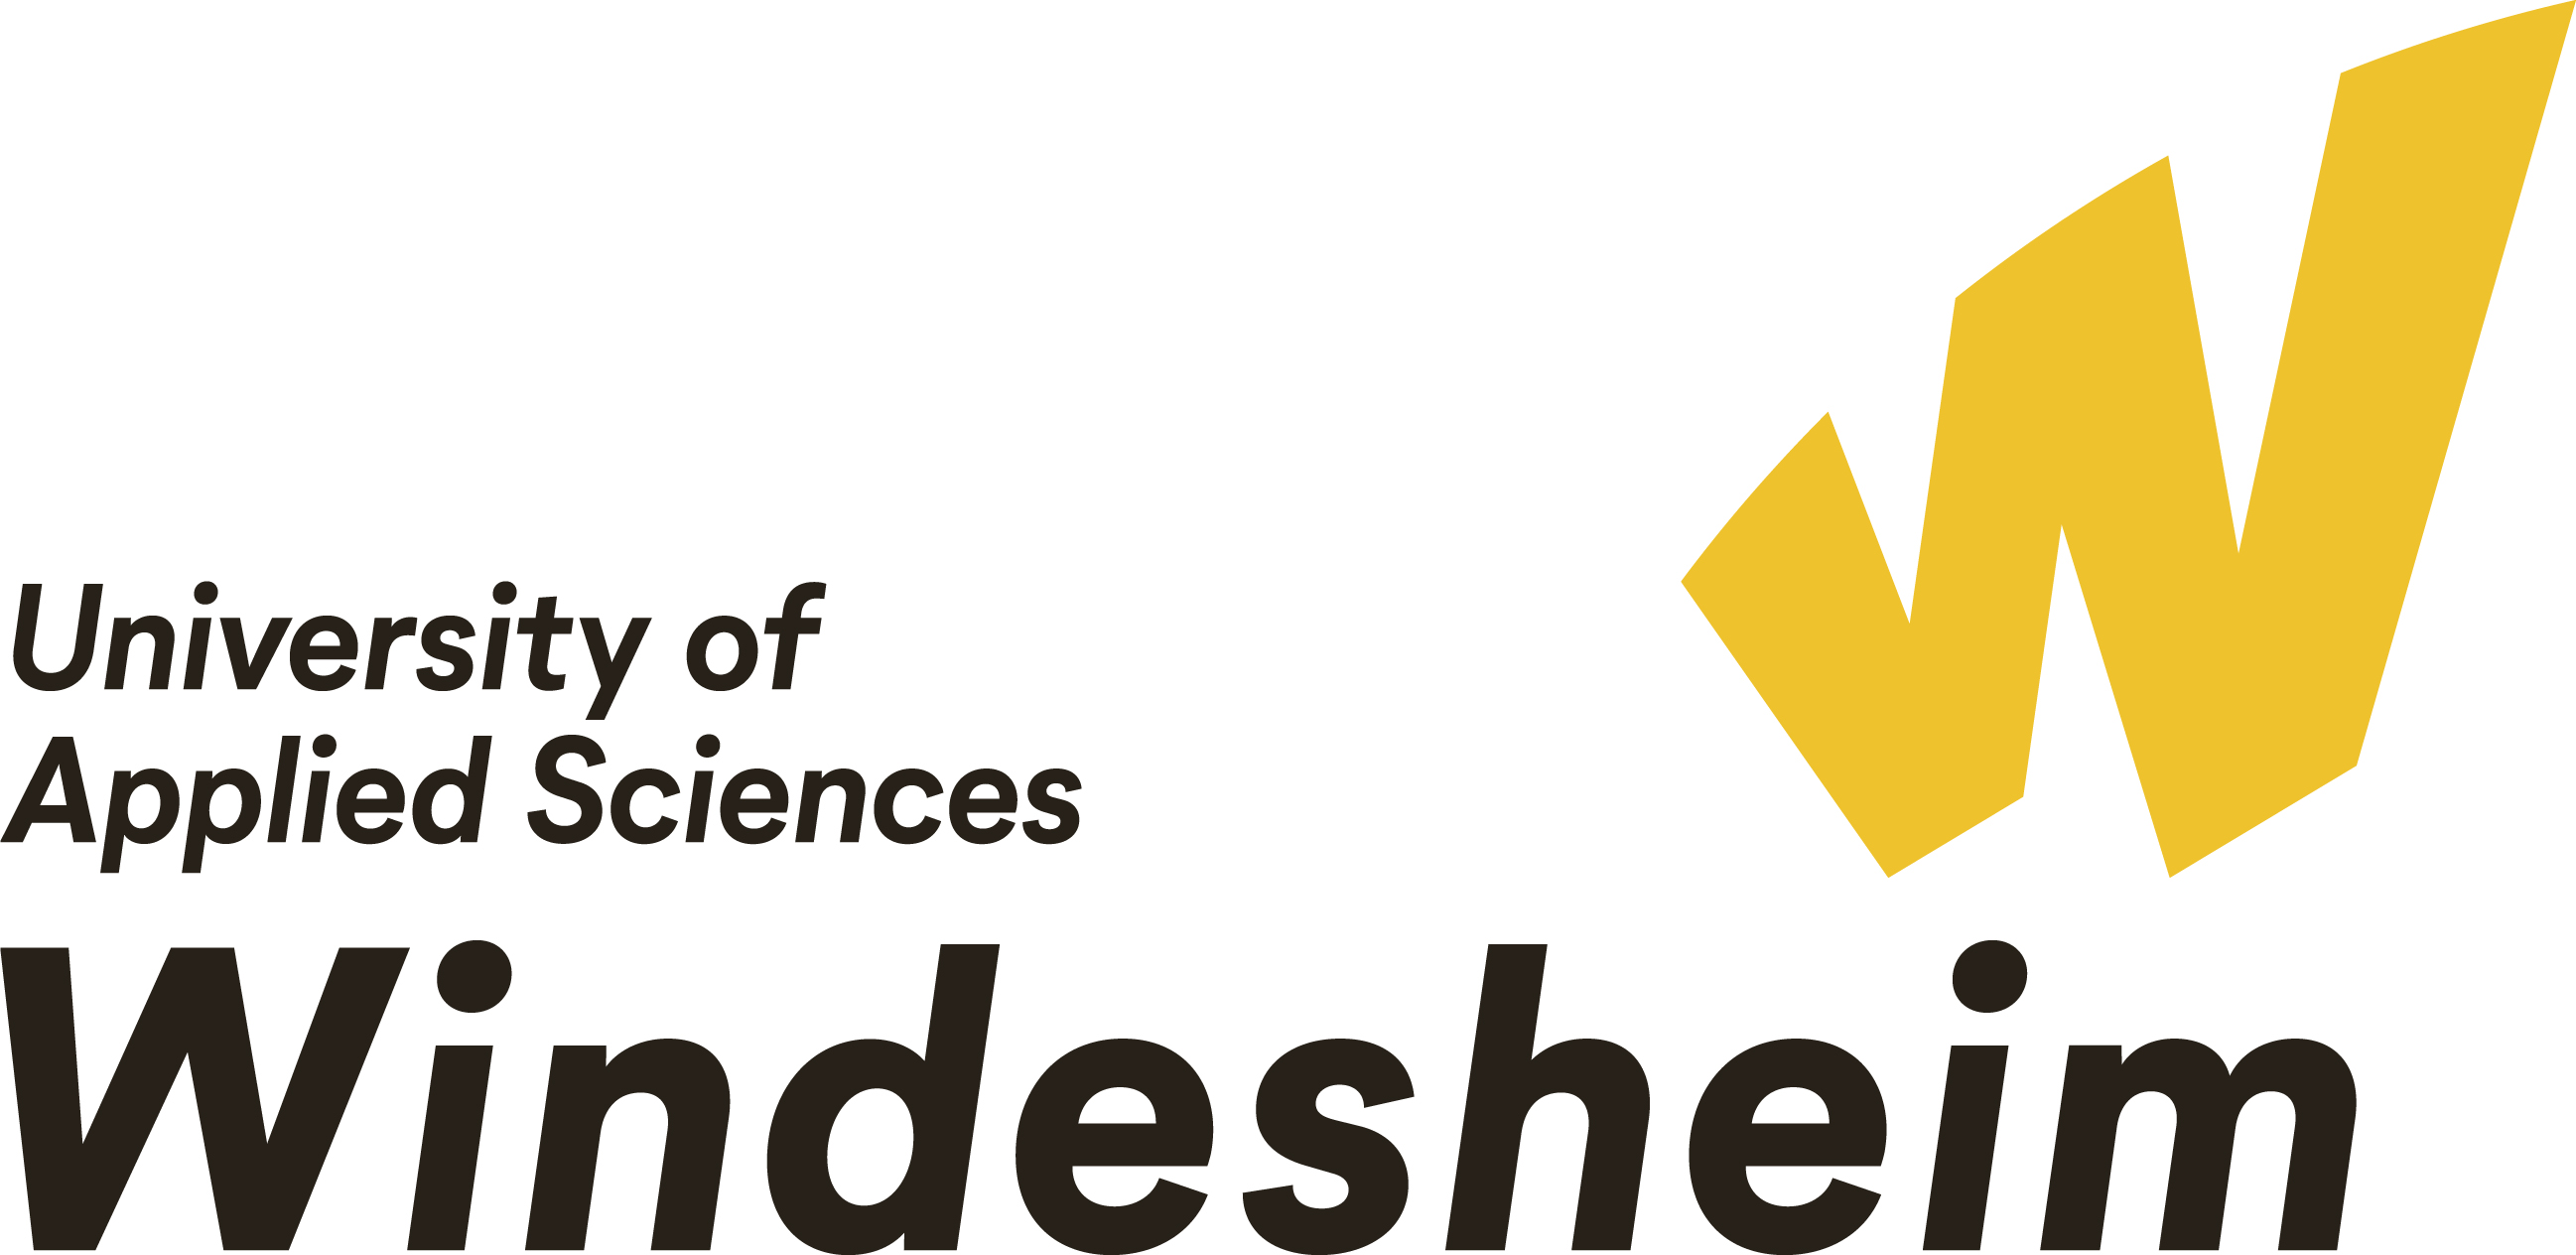 Windesheim University of Applied Sciences logo